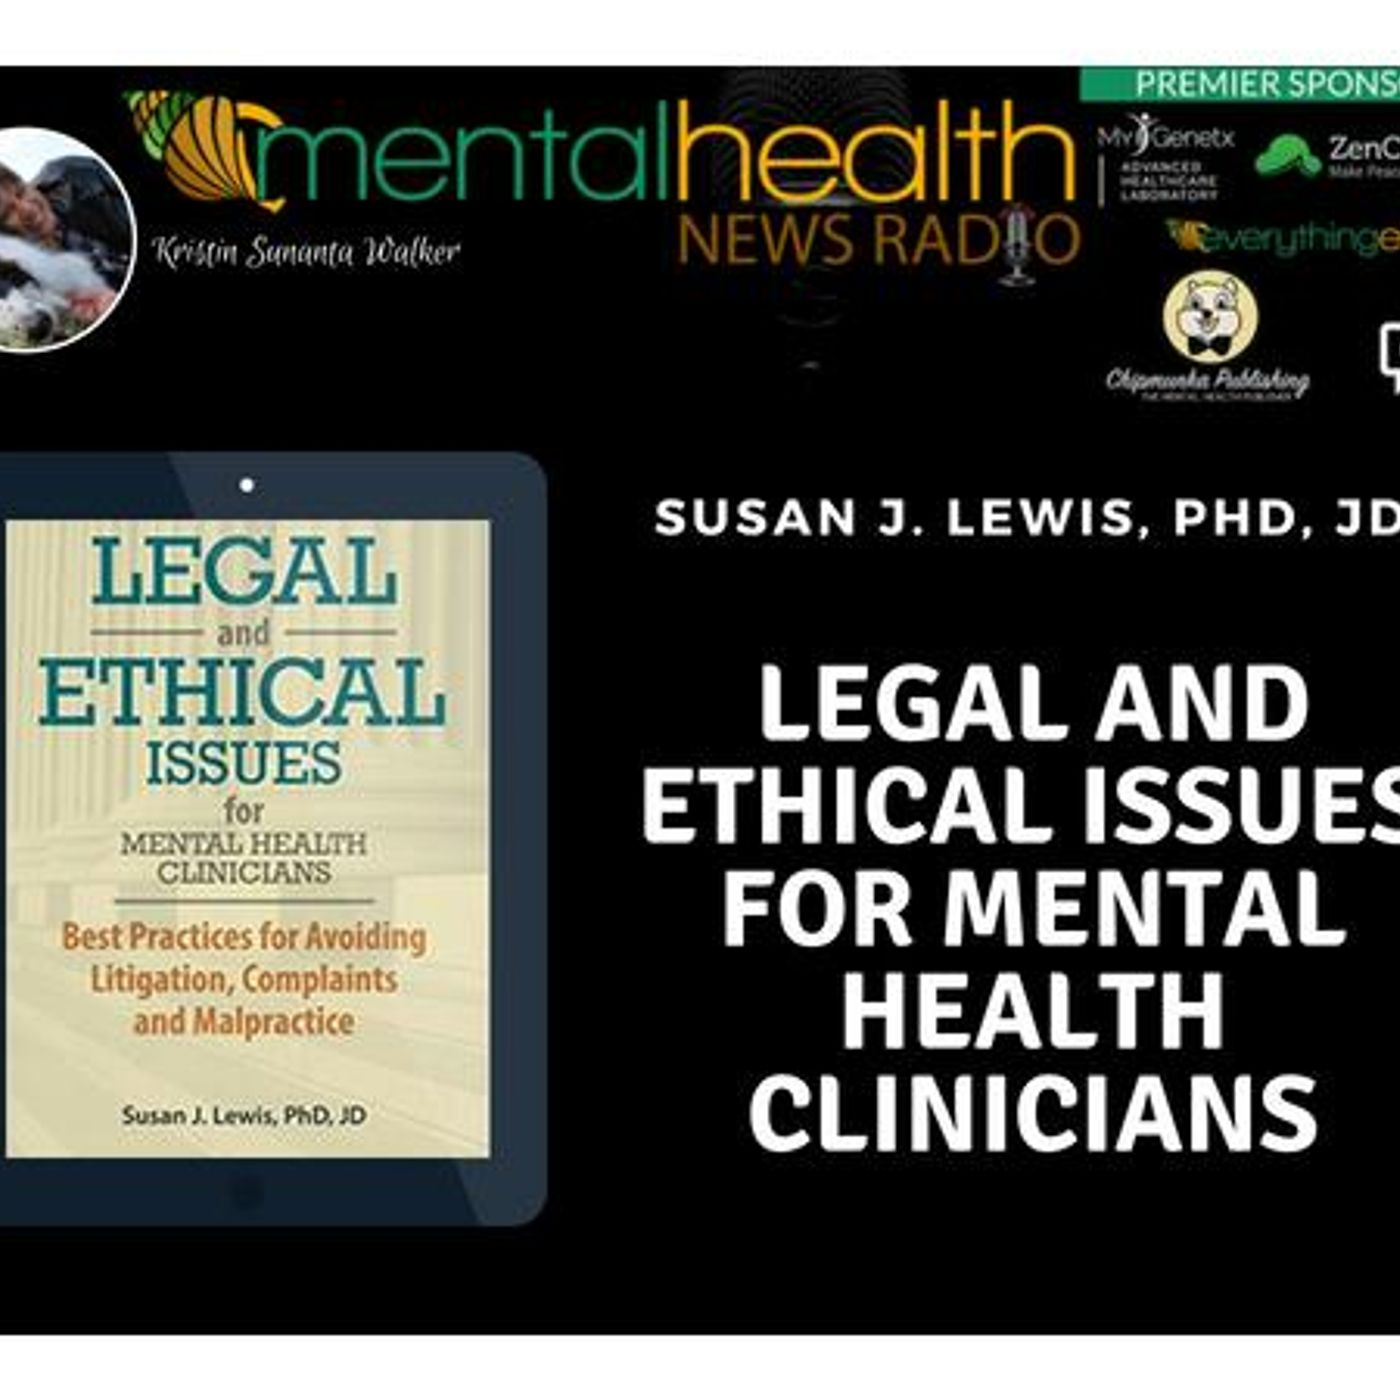 Mental Health News Radio - Legal and Ethical Issues for Mental Health Clinicians: Susan Lewis, PhD, JD